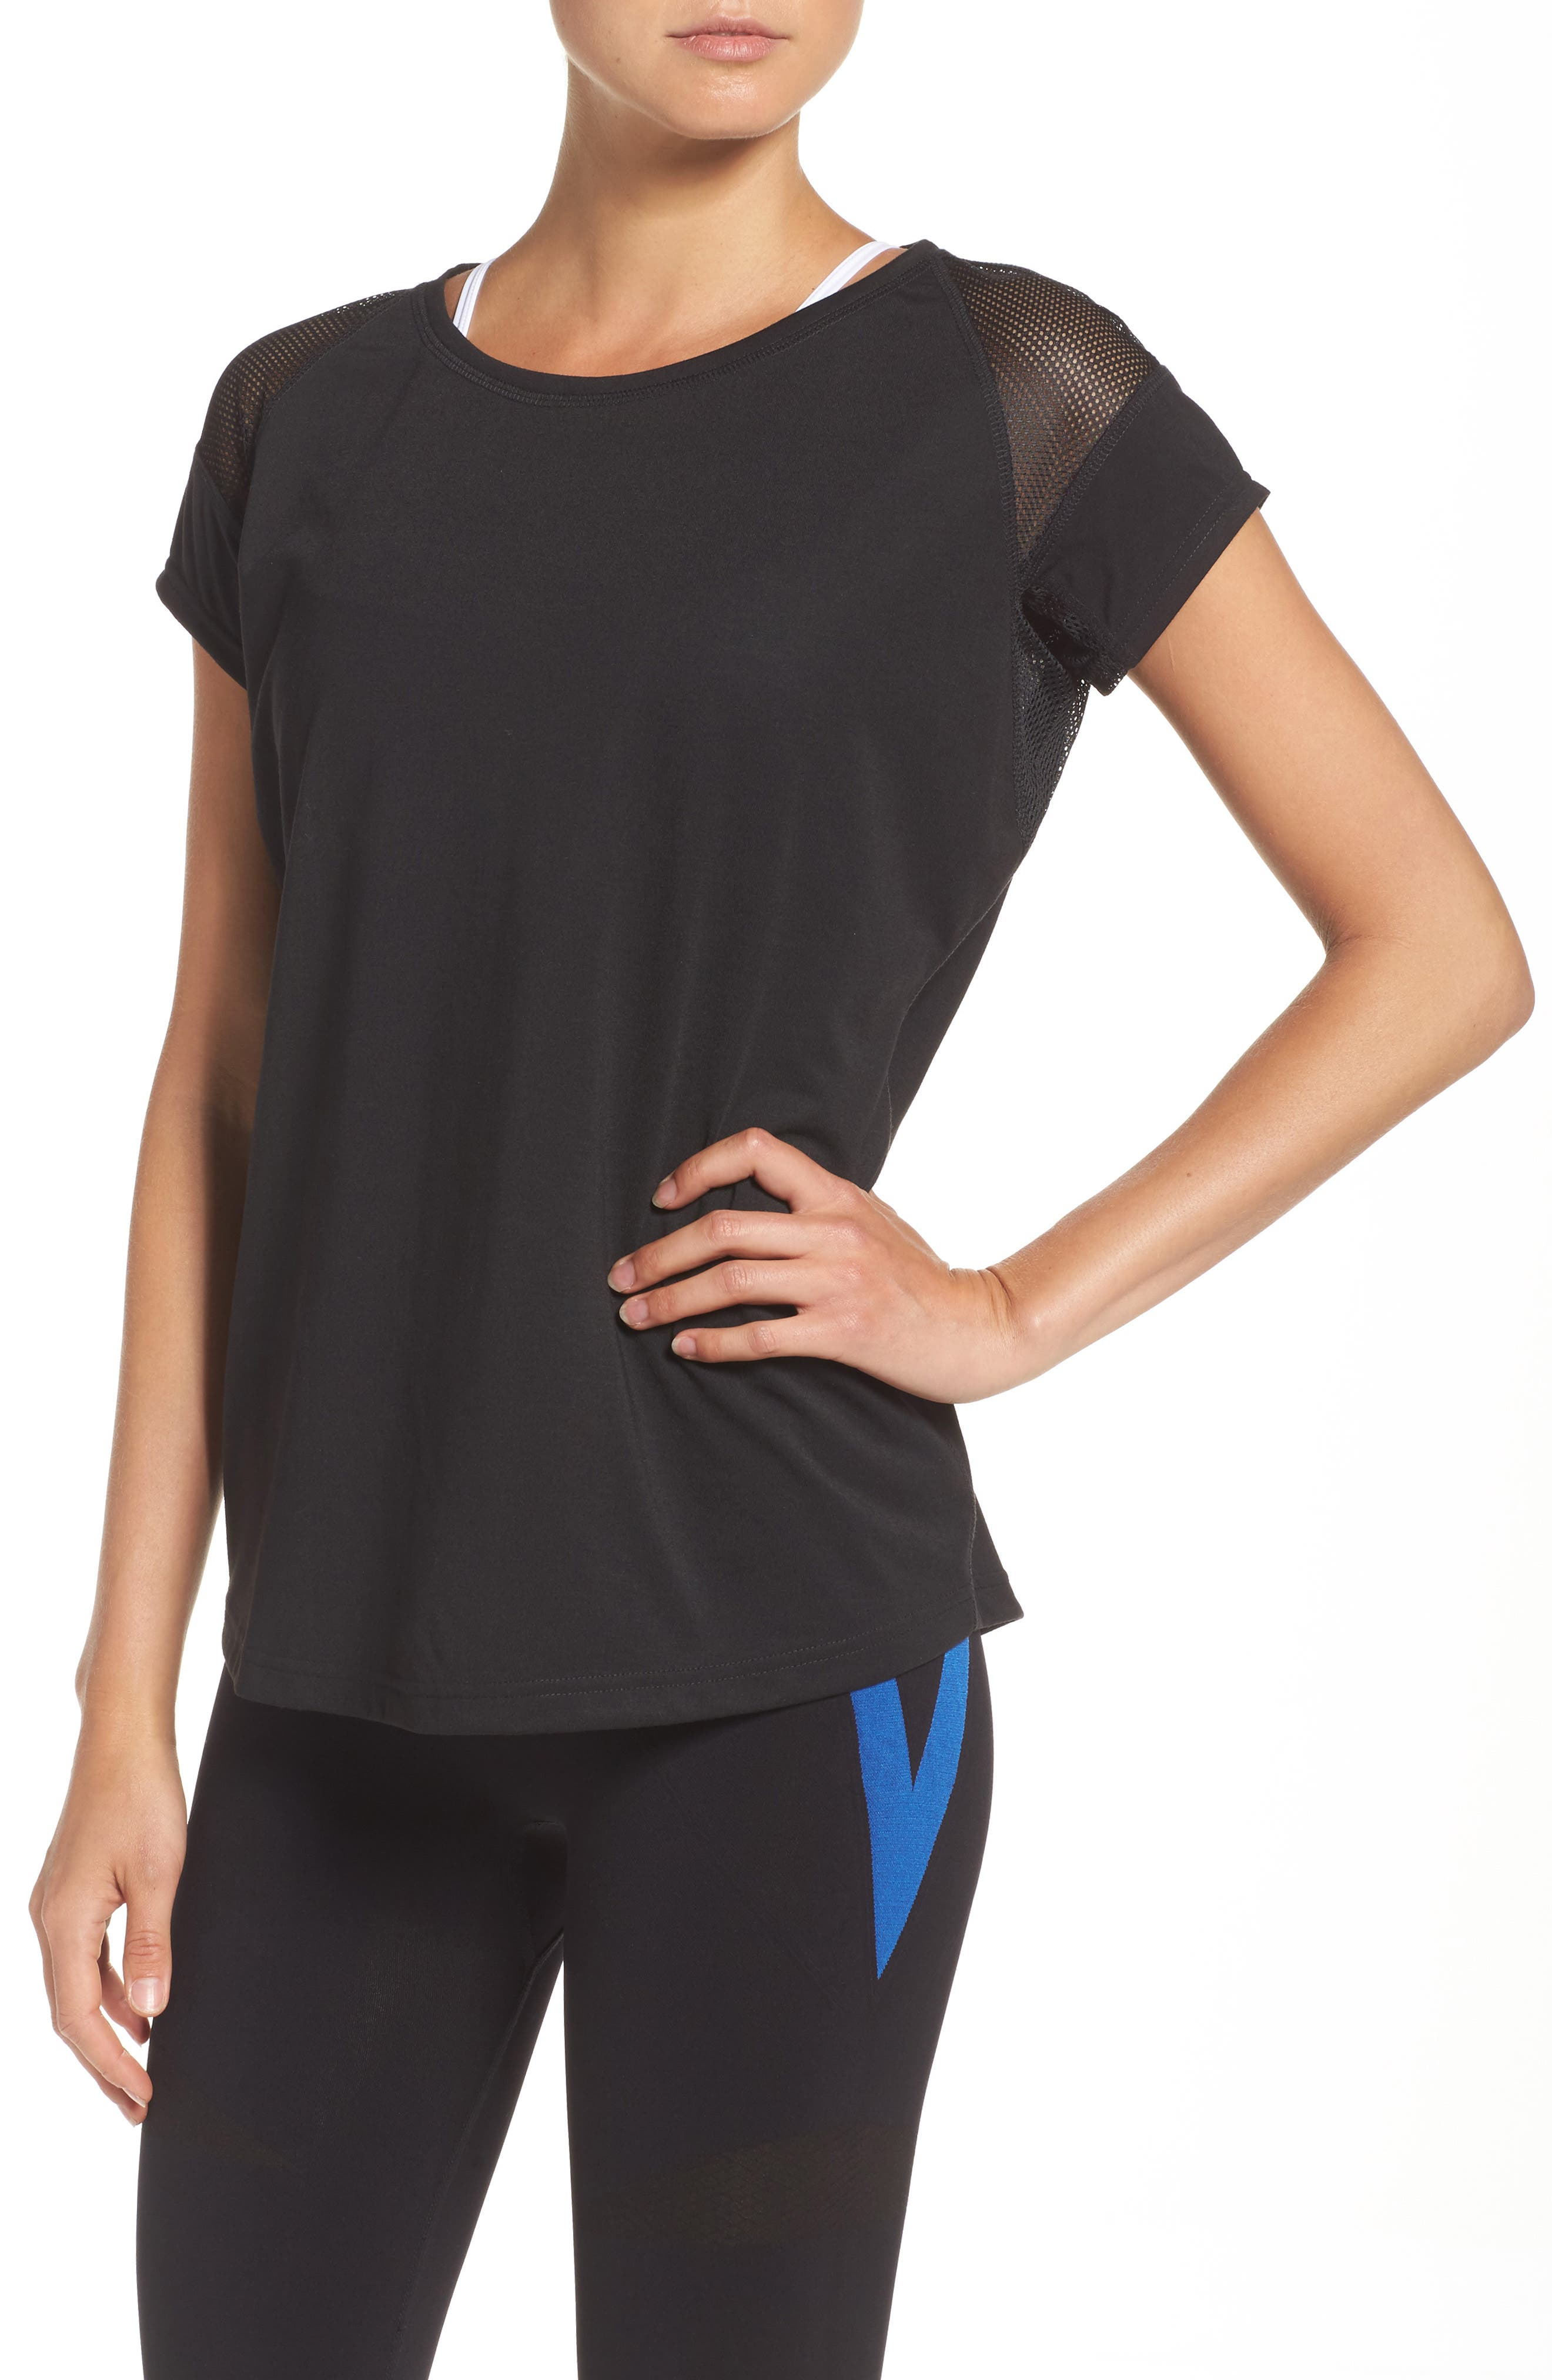 Main Image - BoomBoom Athletica Sport Perfect Tee